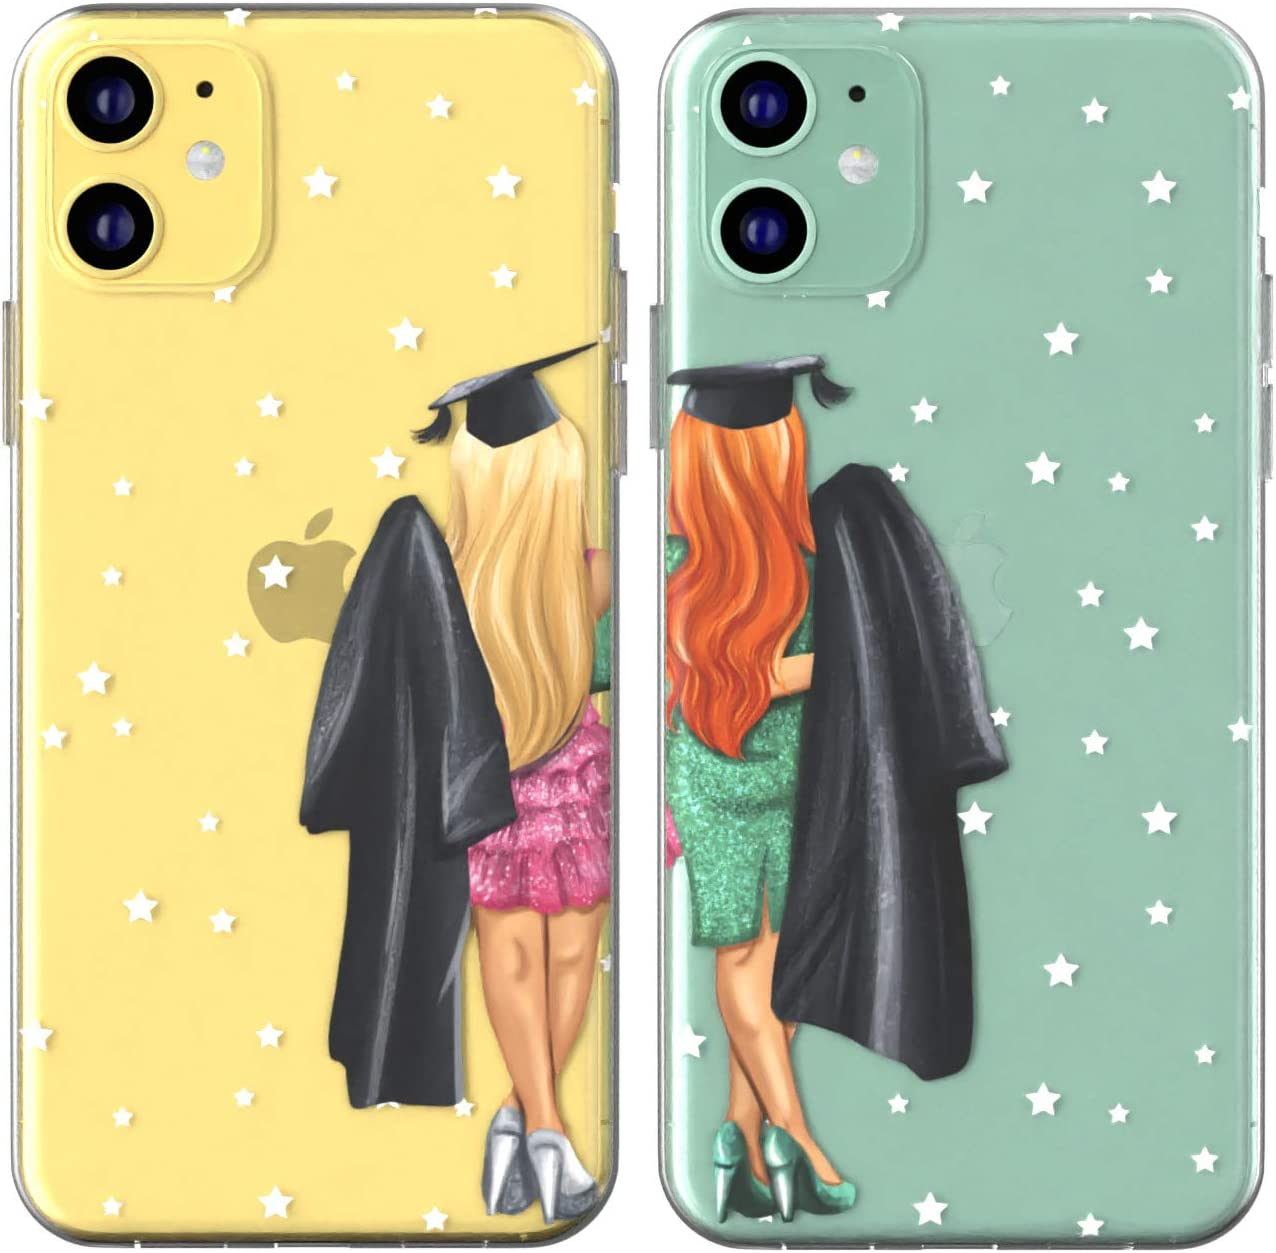 Toik Matching Couple Cases for Apple iPhone 11 Pro Xs Max Xr 10 X 8 Plus 7 6s 5s SE Girlfriend Gift High School Silicone BFFs Mantle TPU Cover University Clear Anniversary Graduation Cap Design Girls